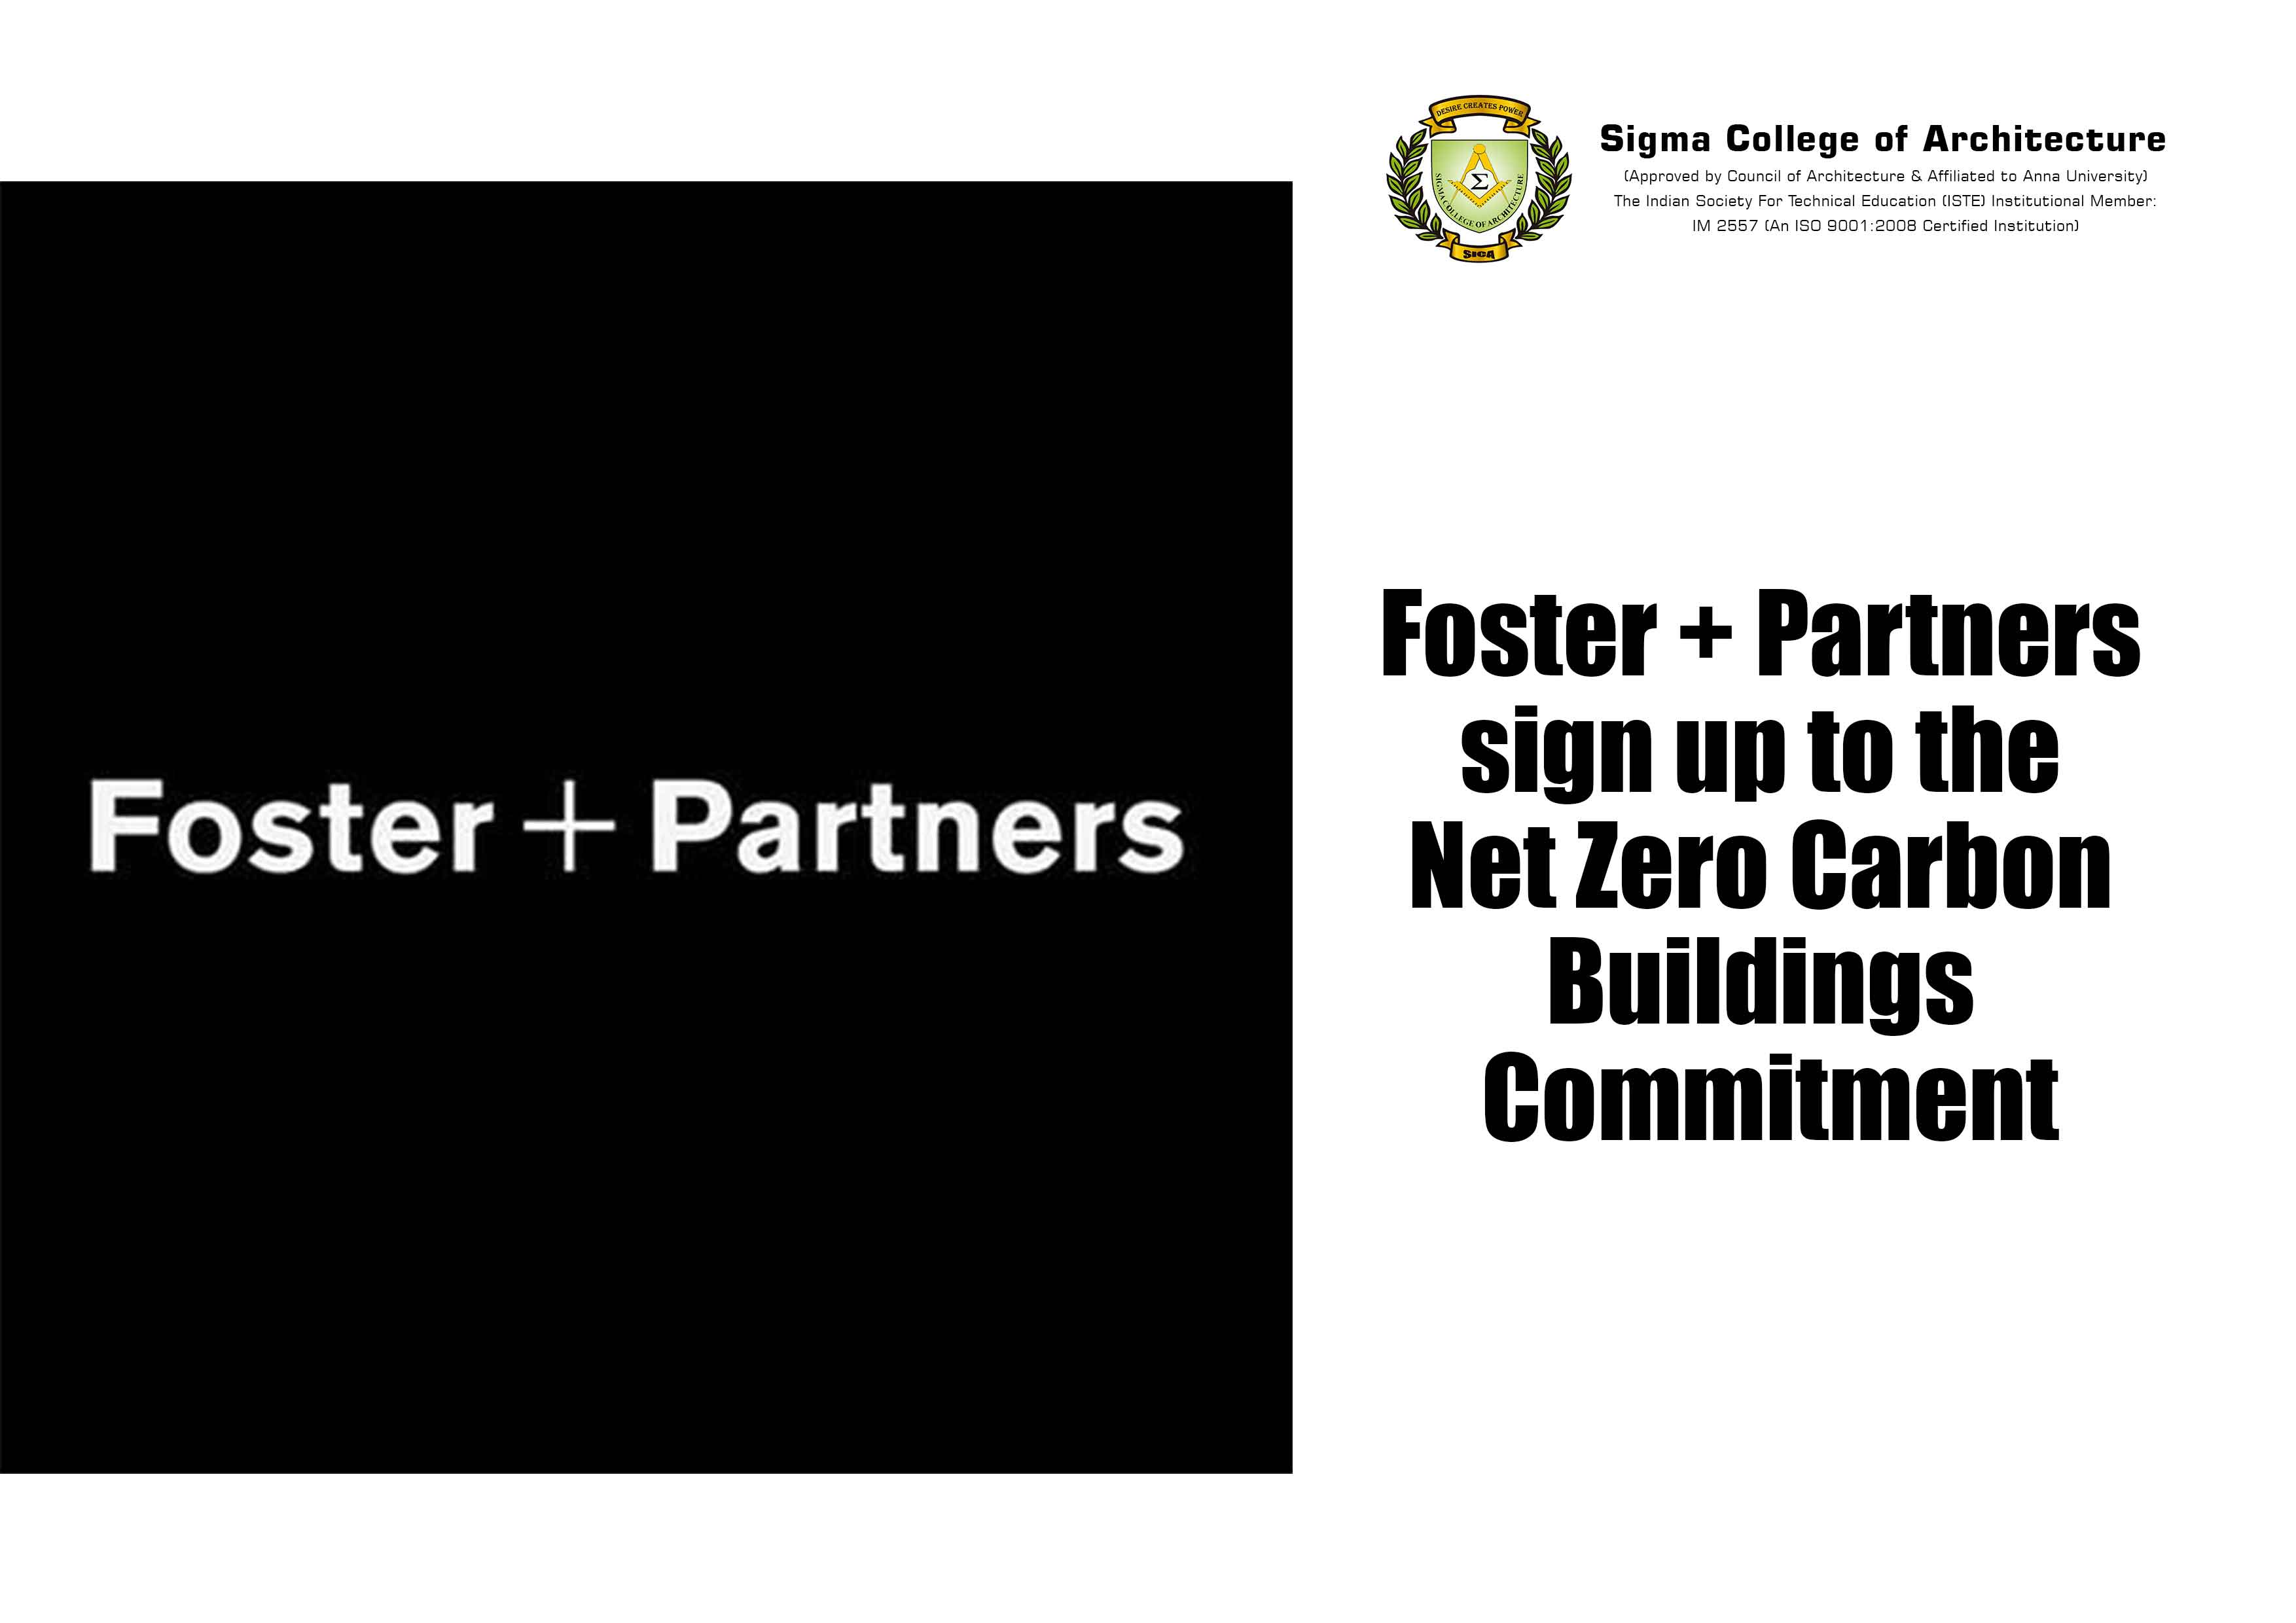 Foster + Partners sign up to the Net Zero Carbon Buildings Commitment